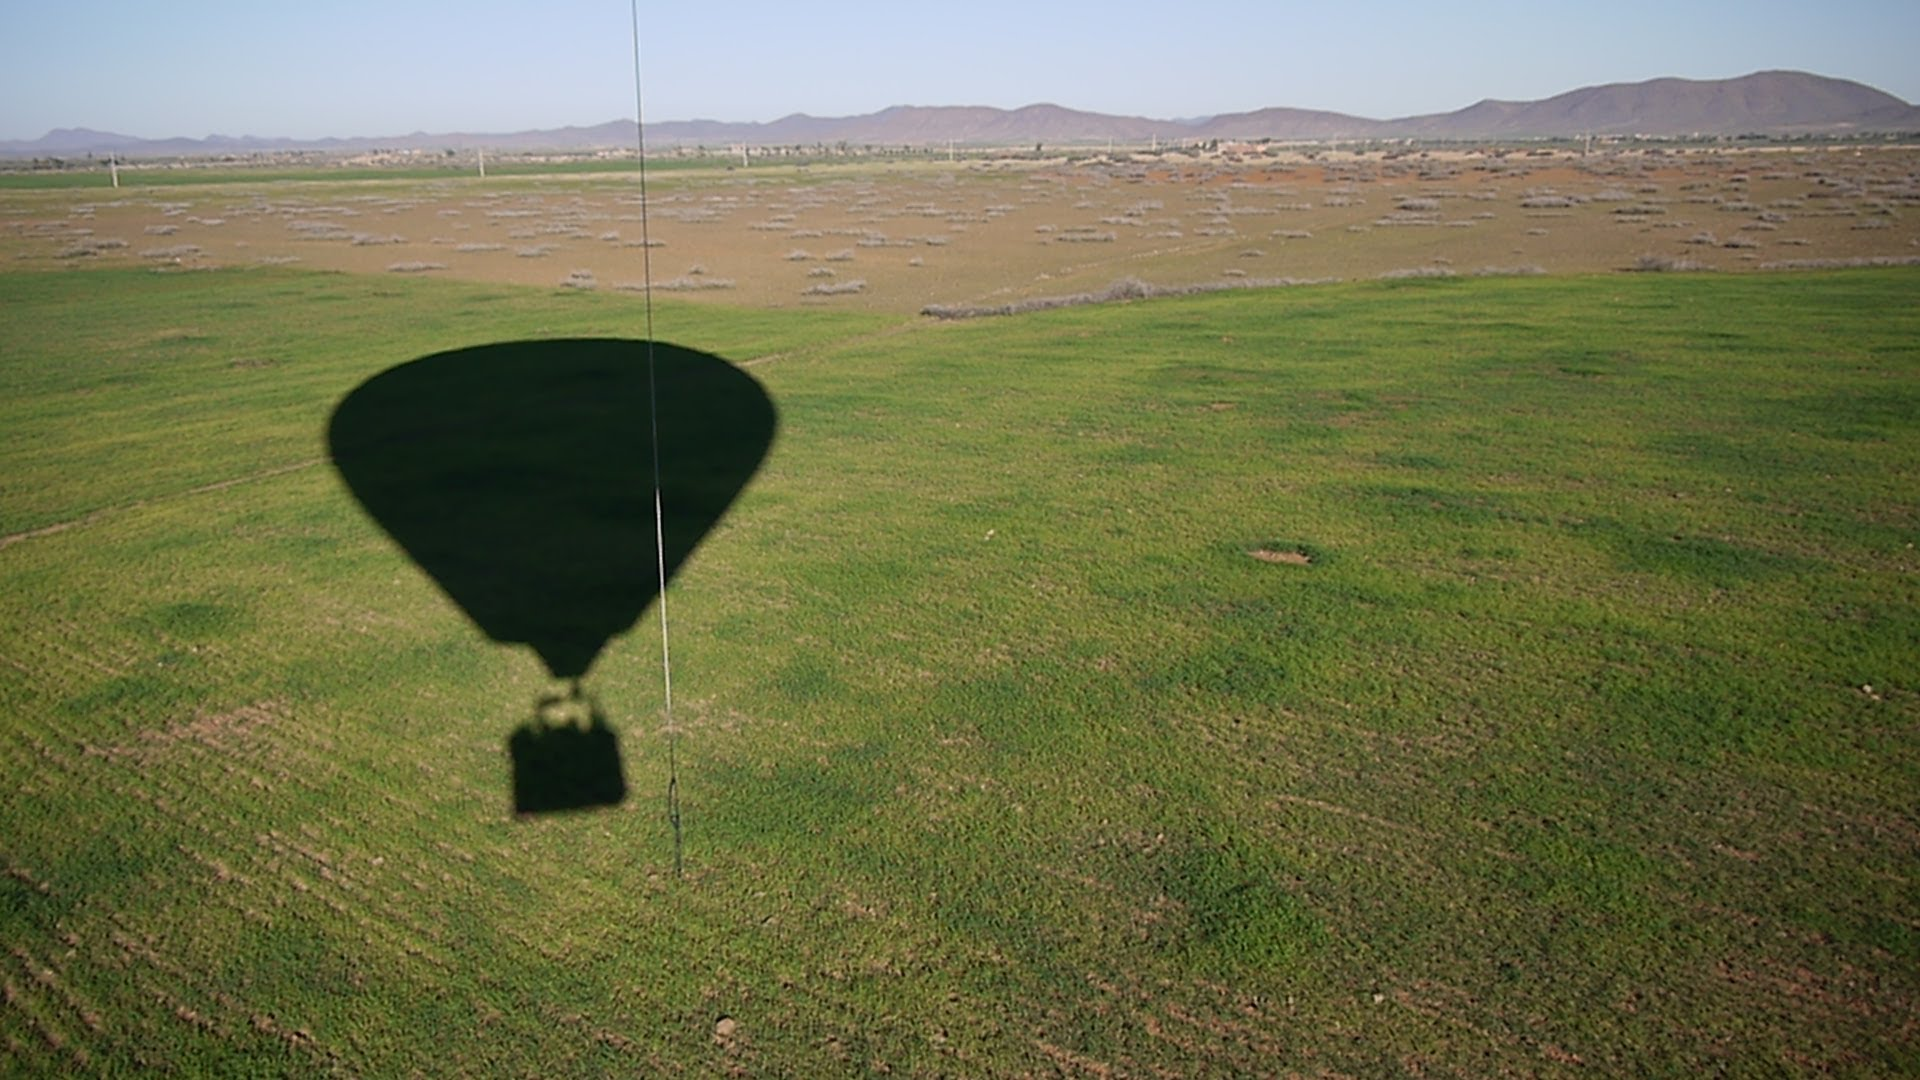 The Bumpy Balloon Ride Landing in Marrakech